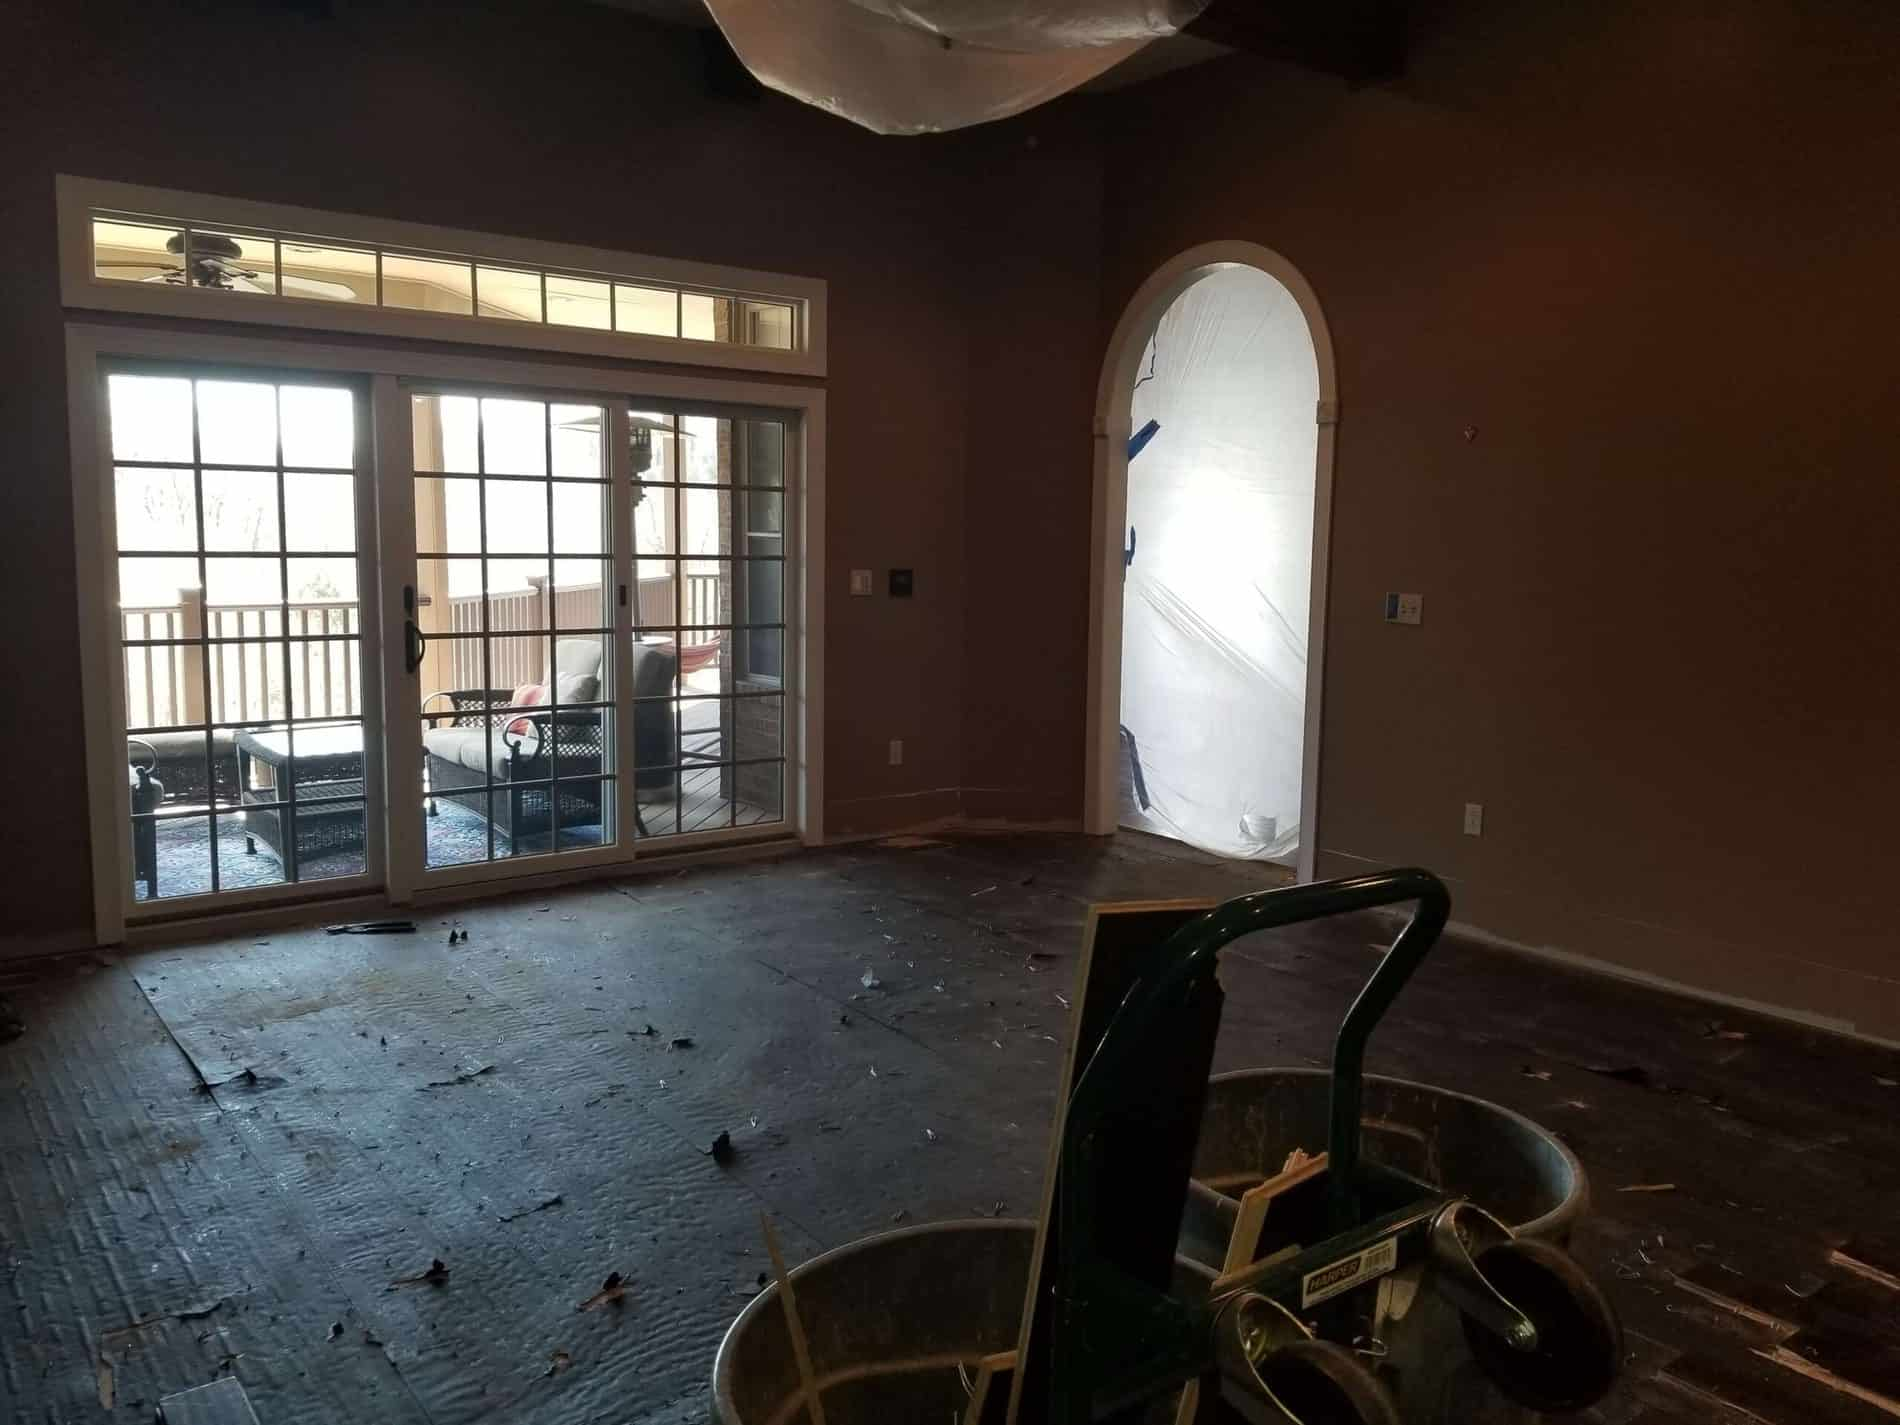 Living room flooring being restored from kitchen water damage